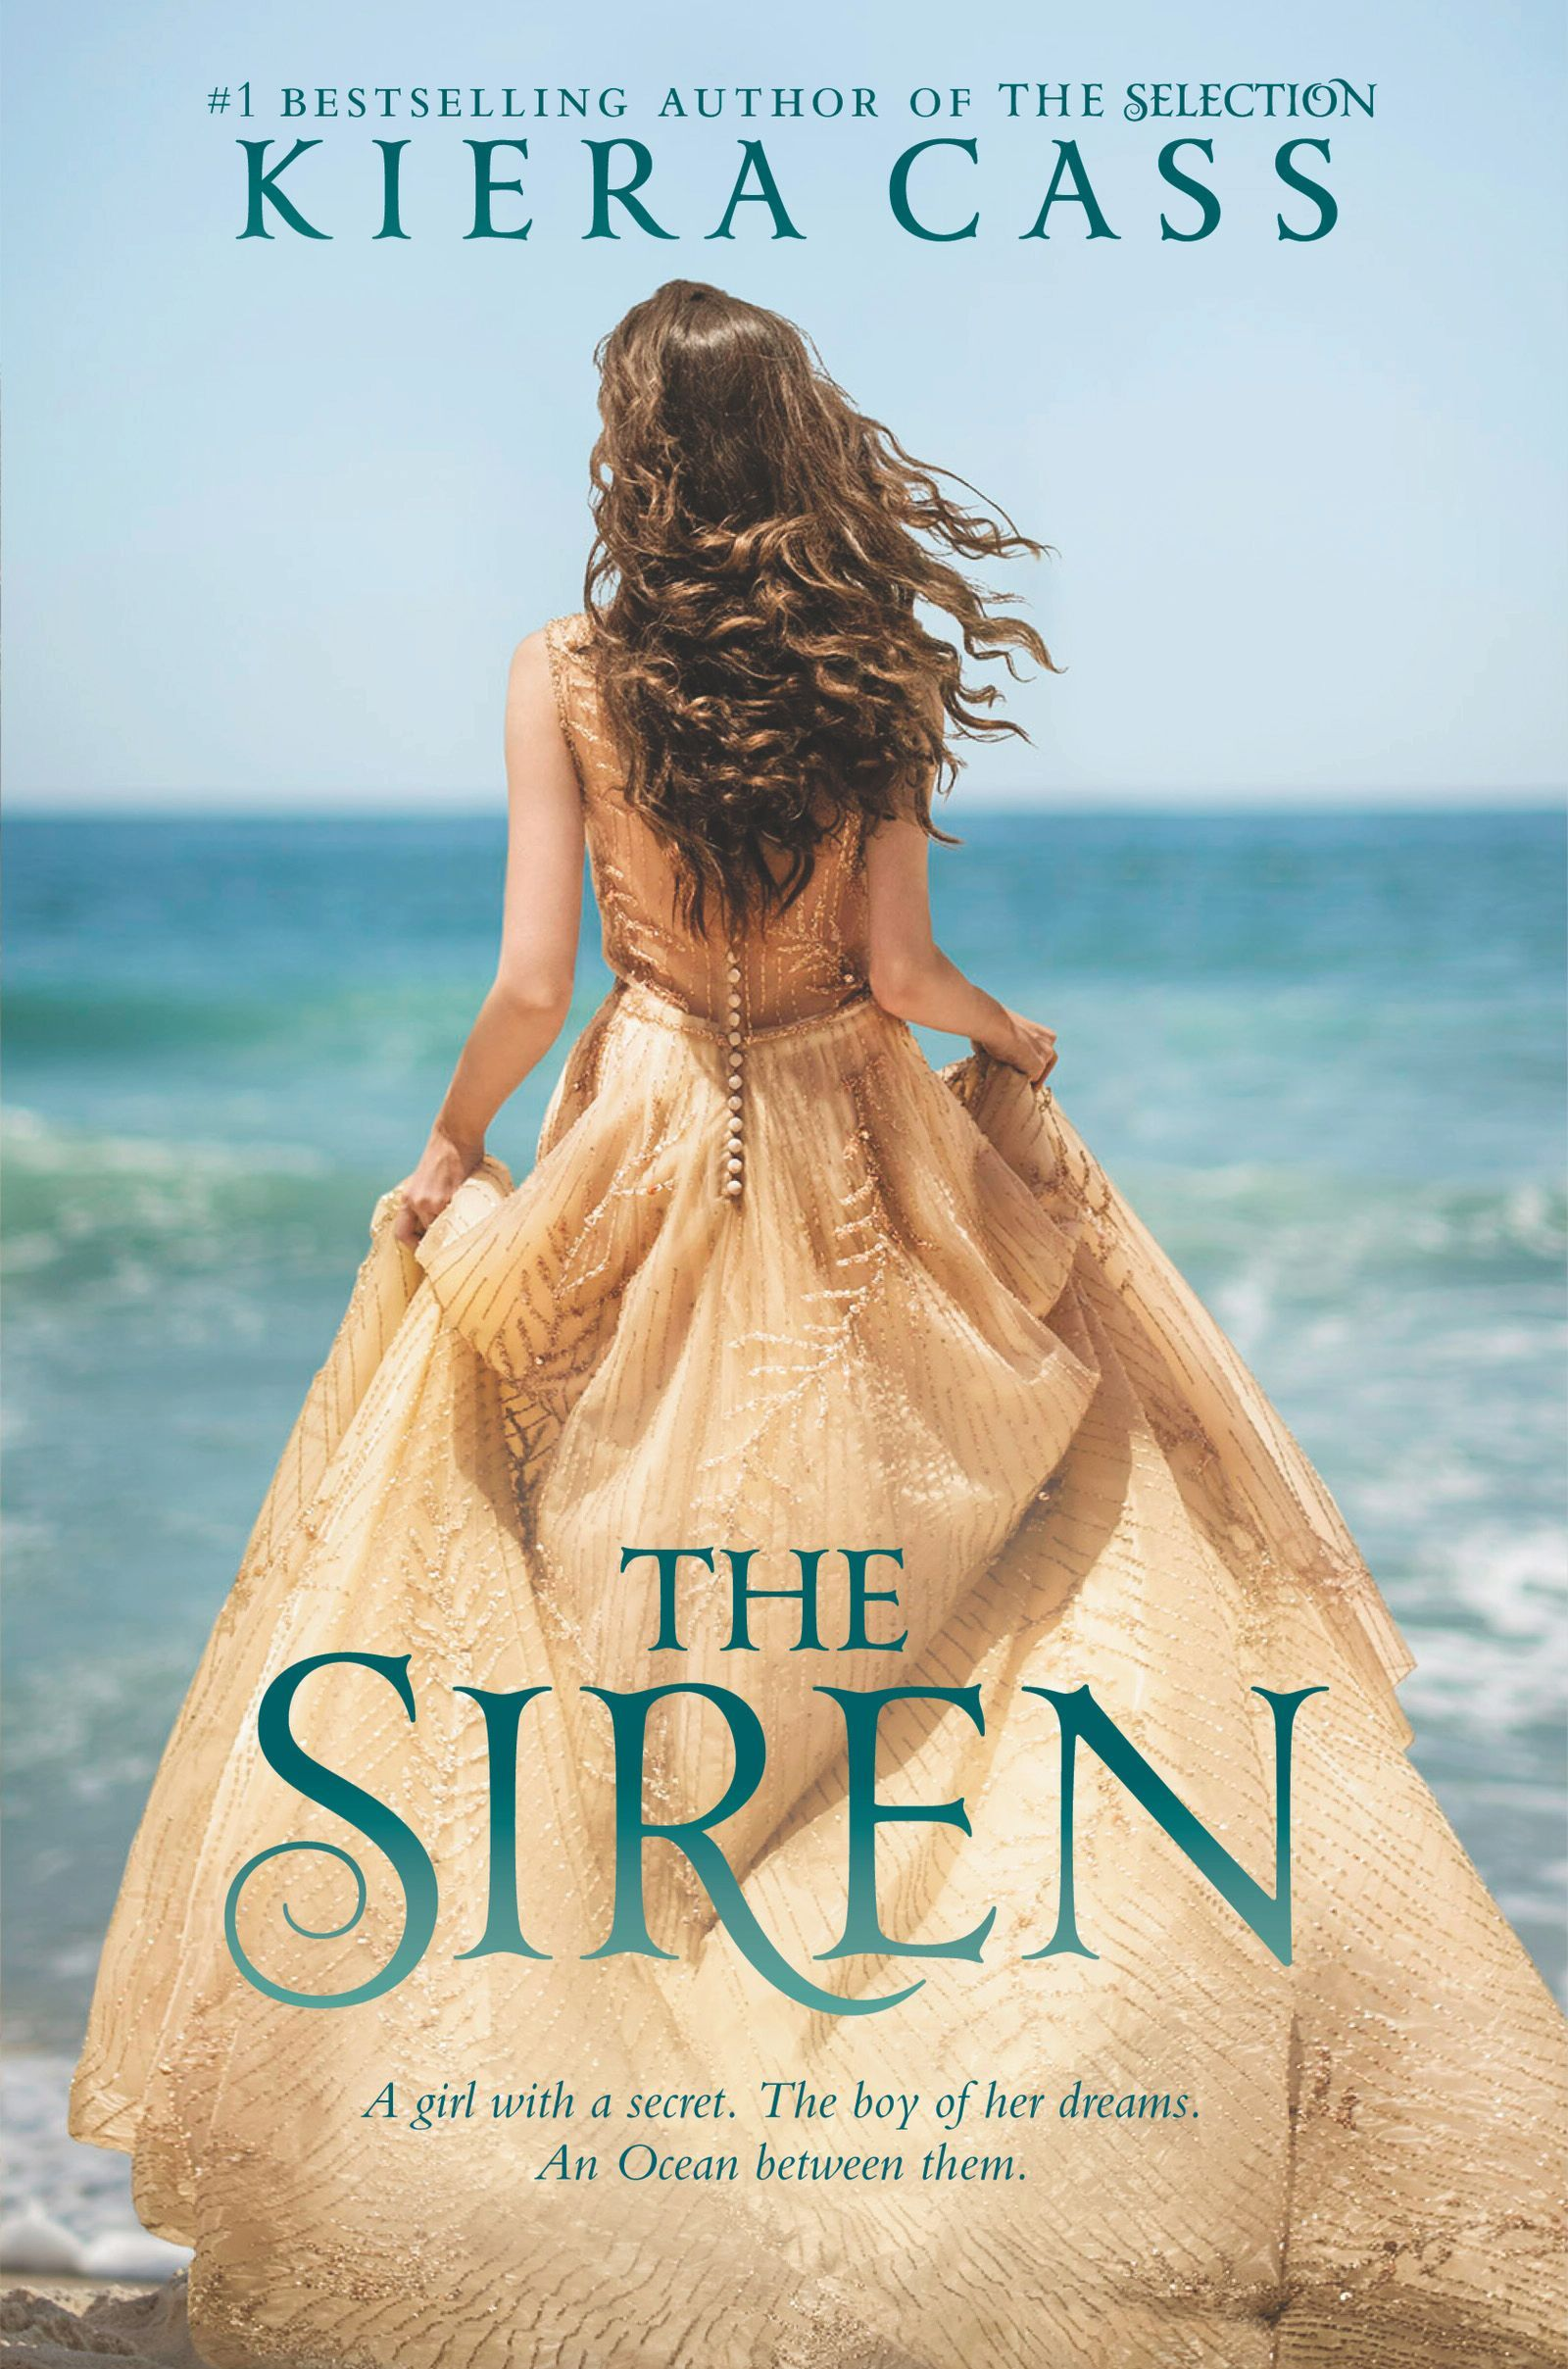 The siren kiera cass ebook cloaklisk chases space case nickelodeon publishing chases space case ebook fandeluxe Choice Image